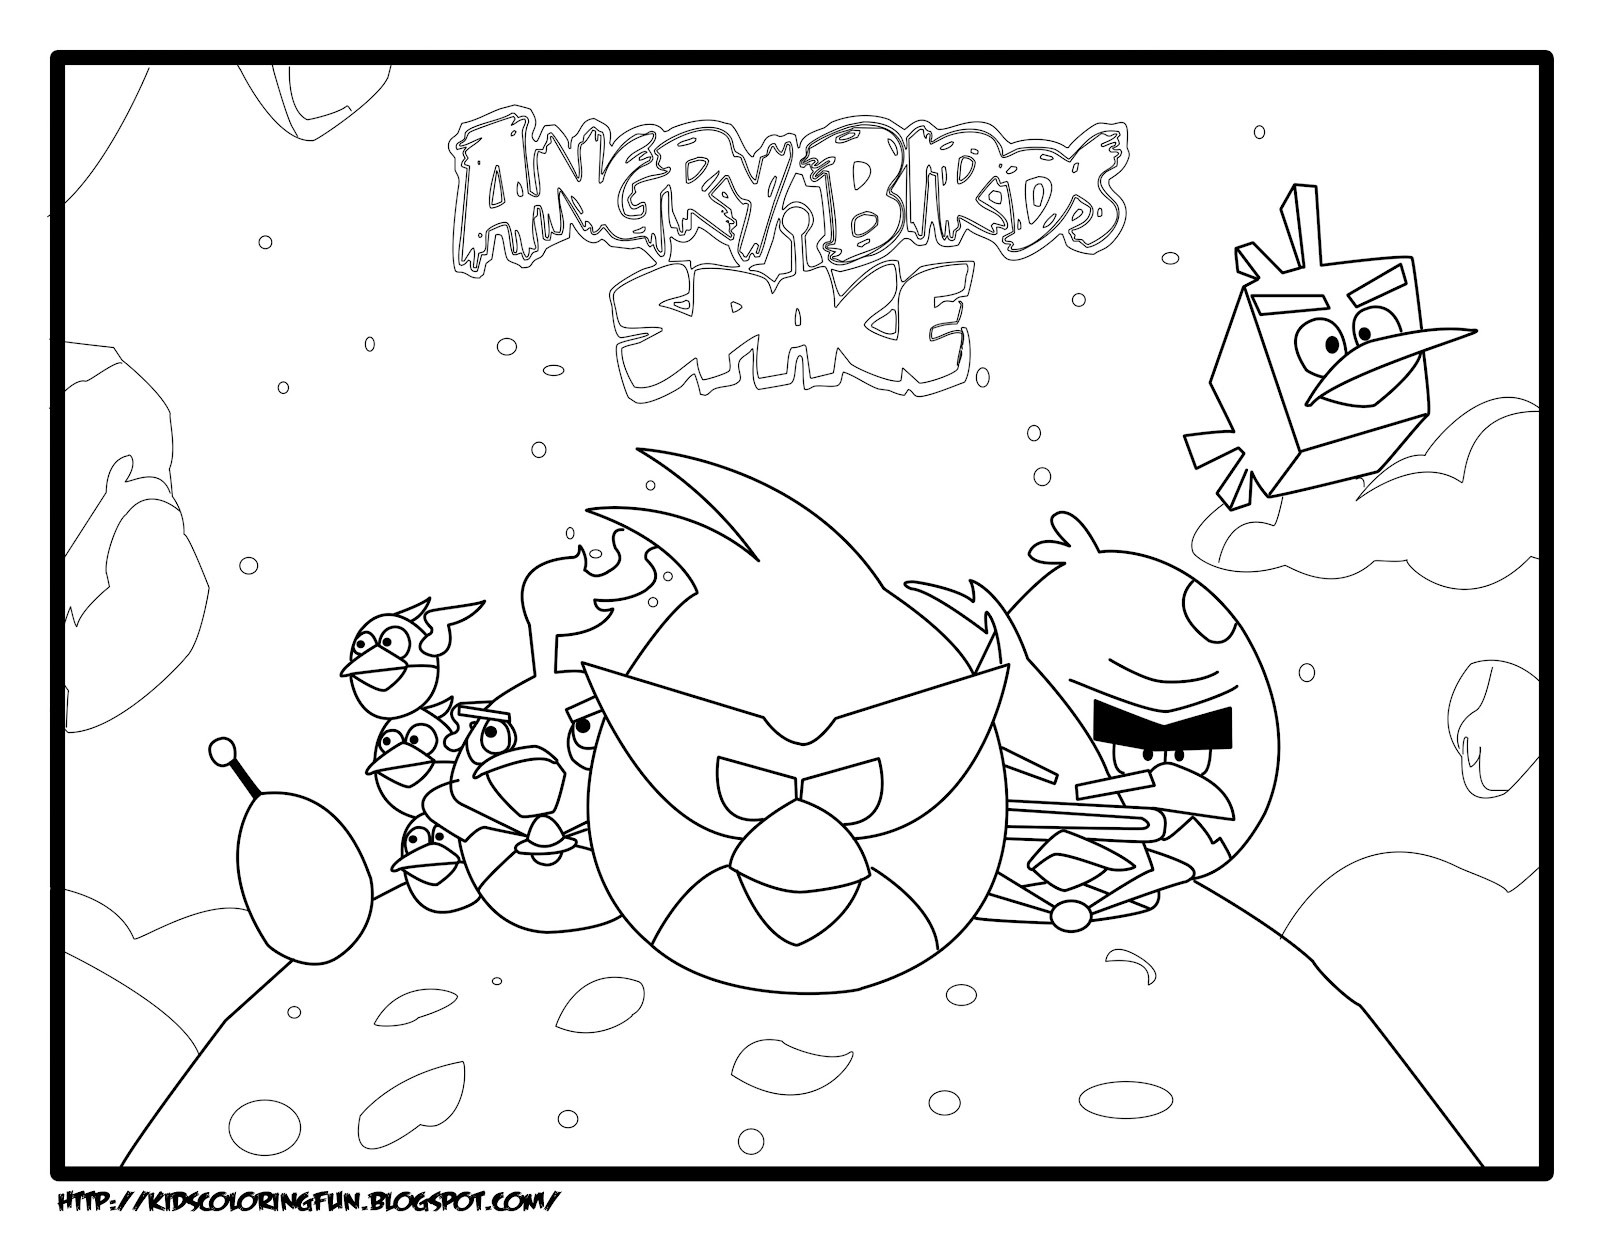 1600x1236 Angry Birds Bomb Coloring Pages Copy Free Angry Birds Space